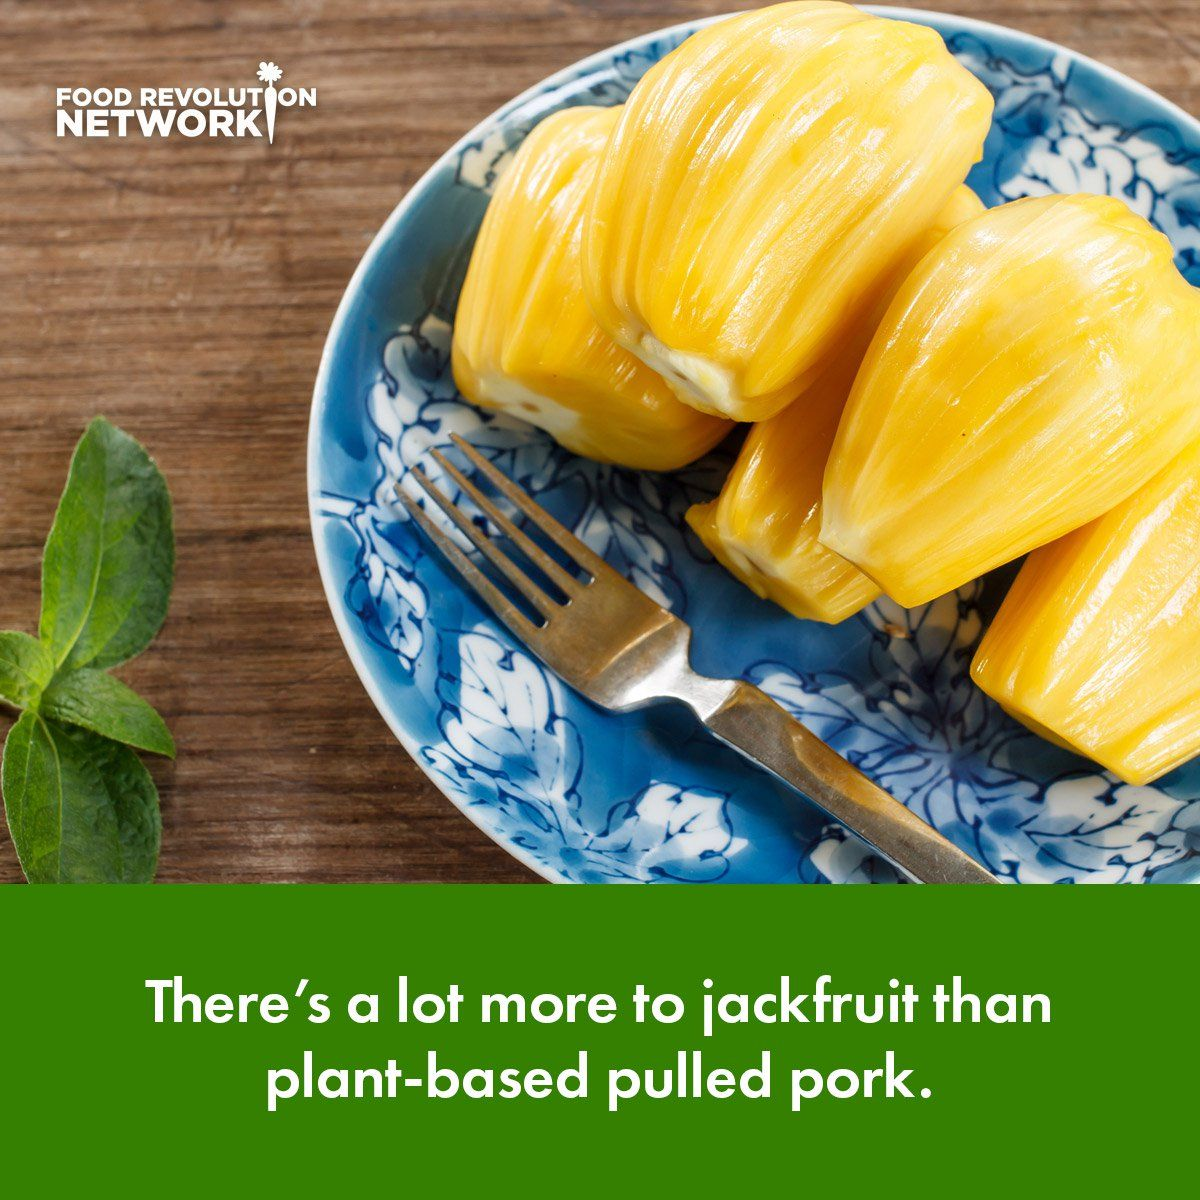 What Is Jackfruit Everything You Need To Know About This Odd Yet Nutritious And Sustainable